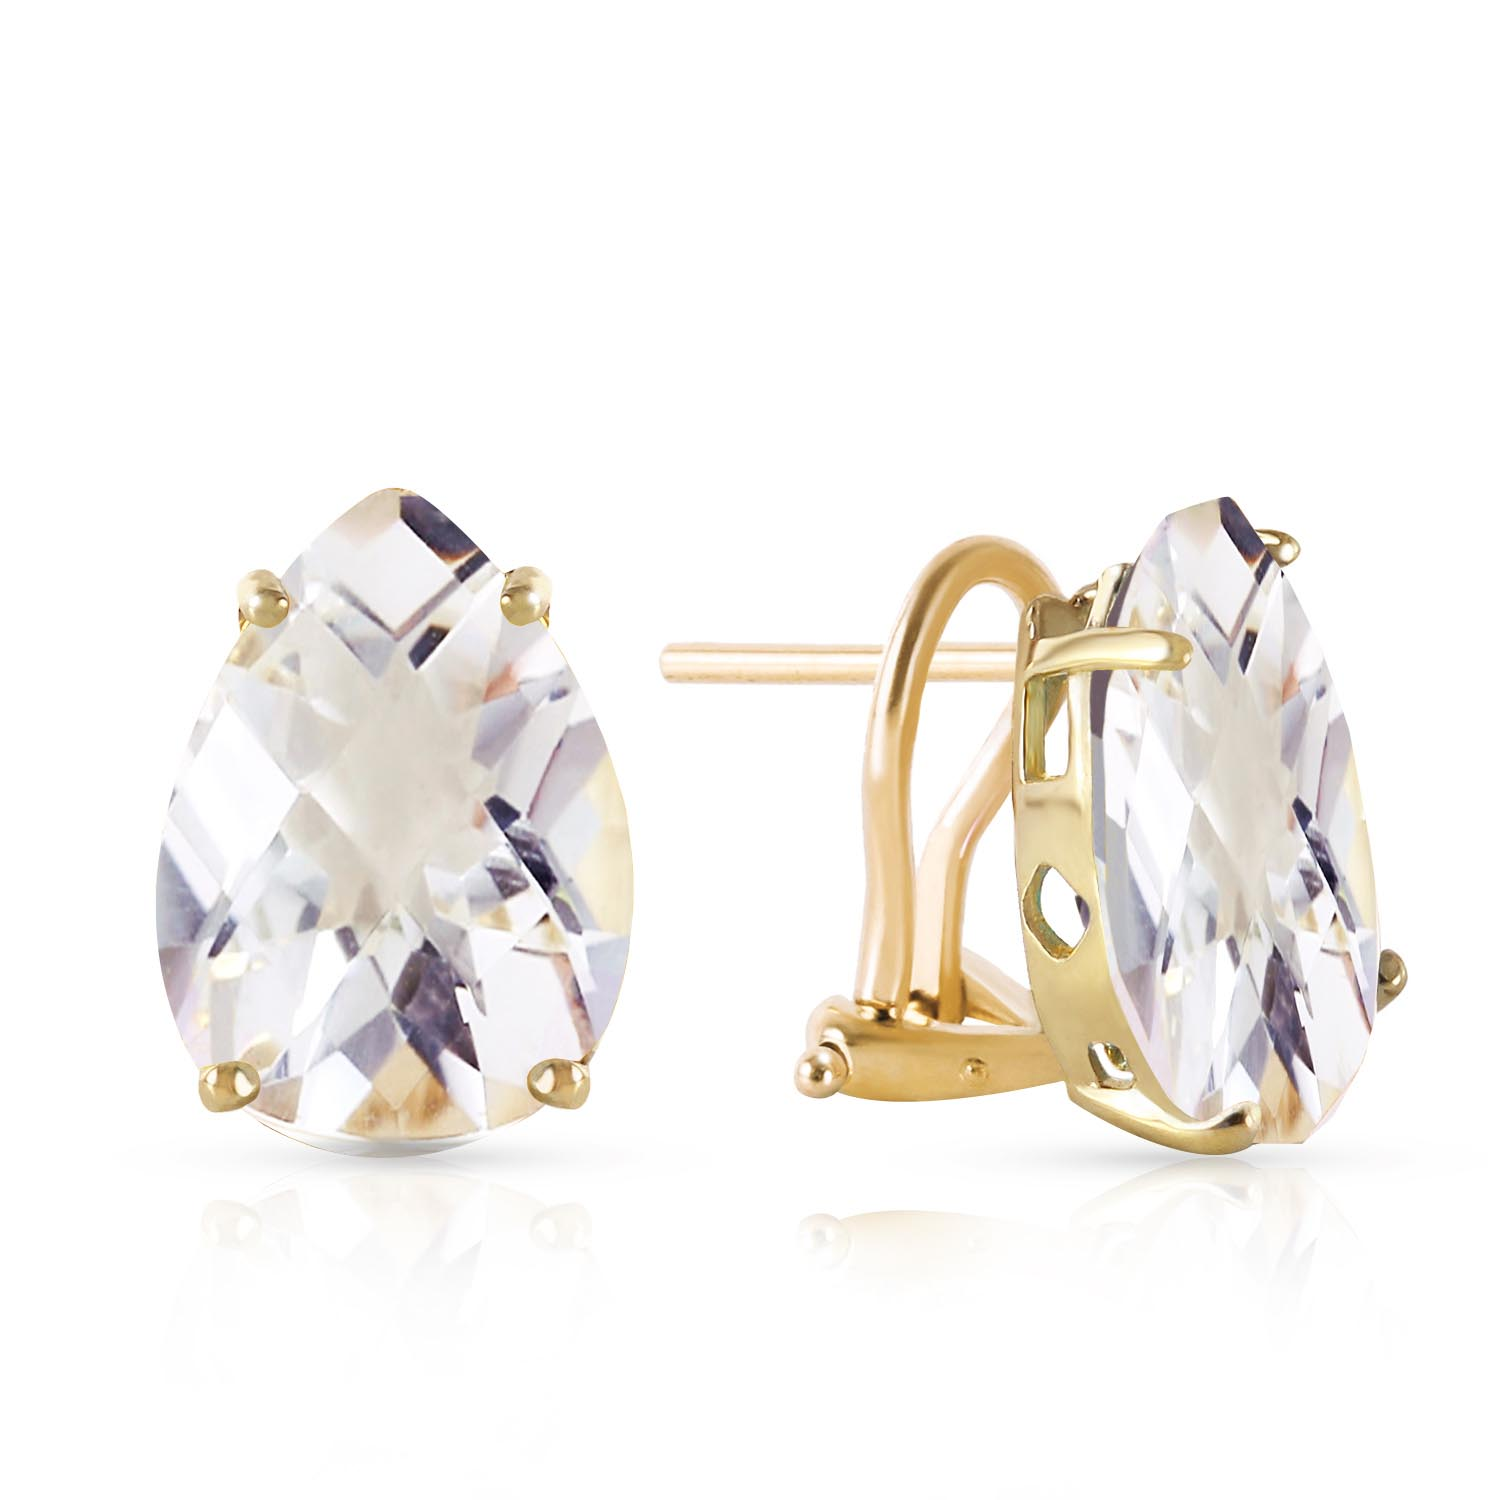 White Topaz Droplet Stud Earrings 10.0ctw in 9ct Gold